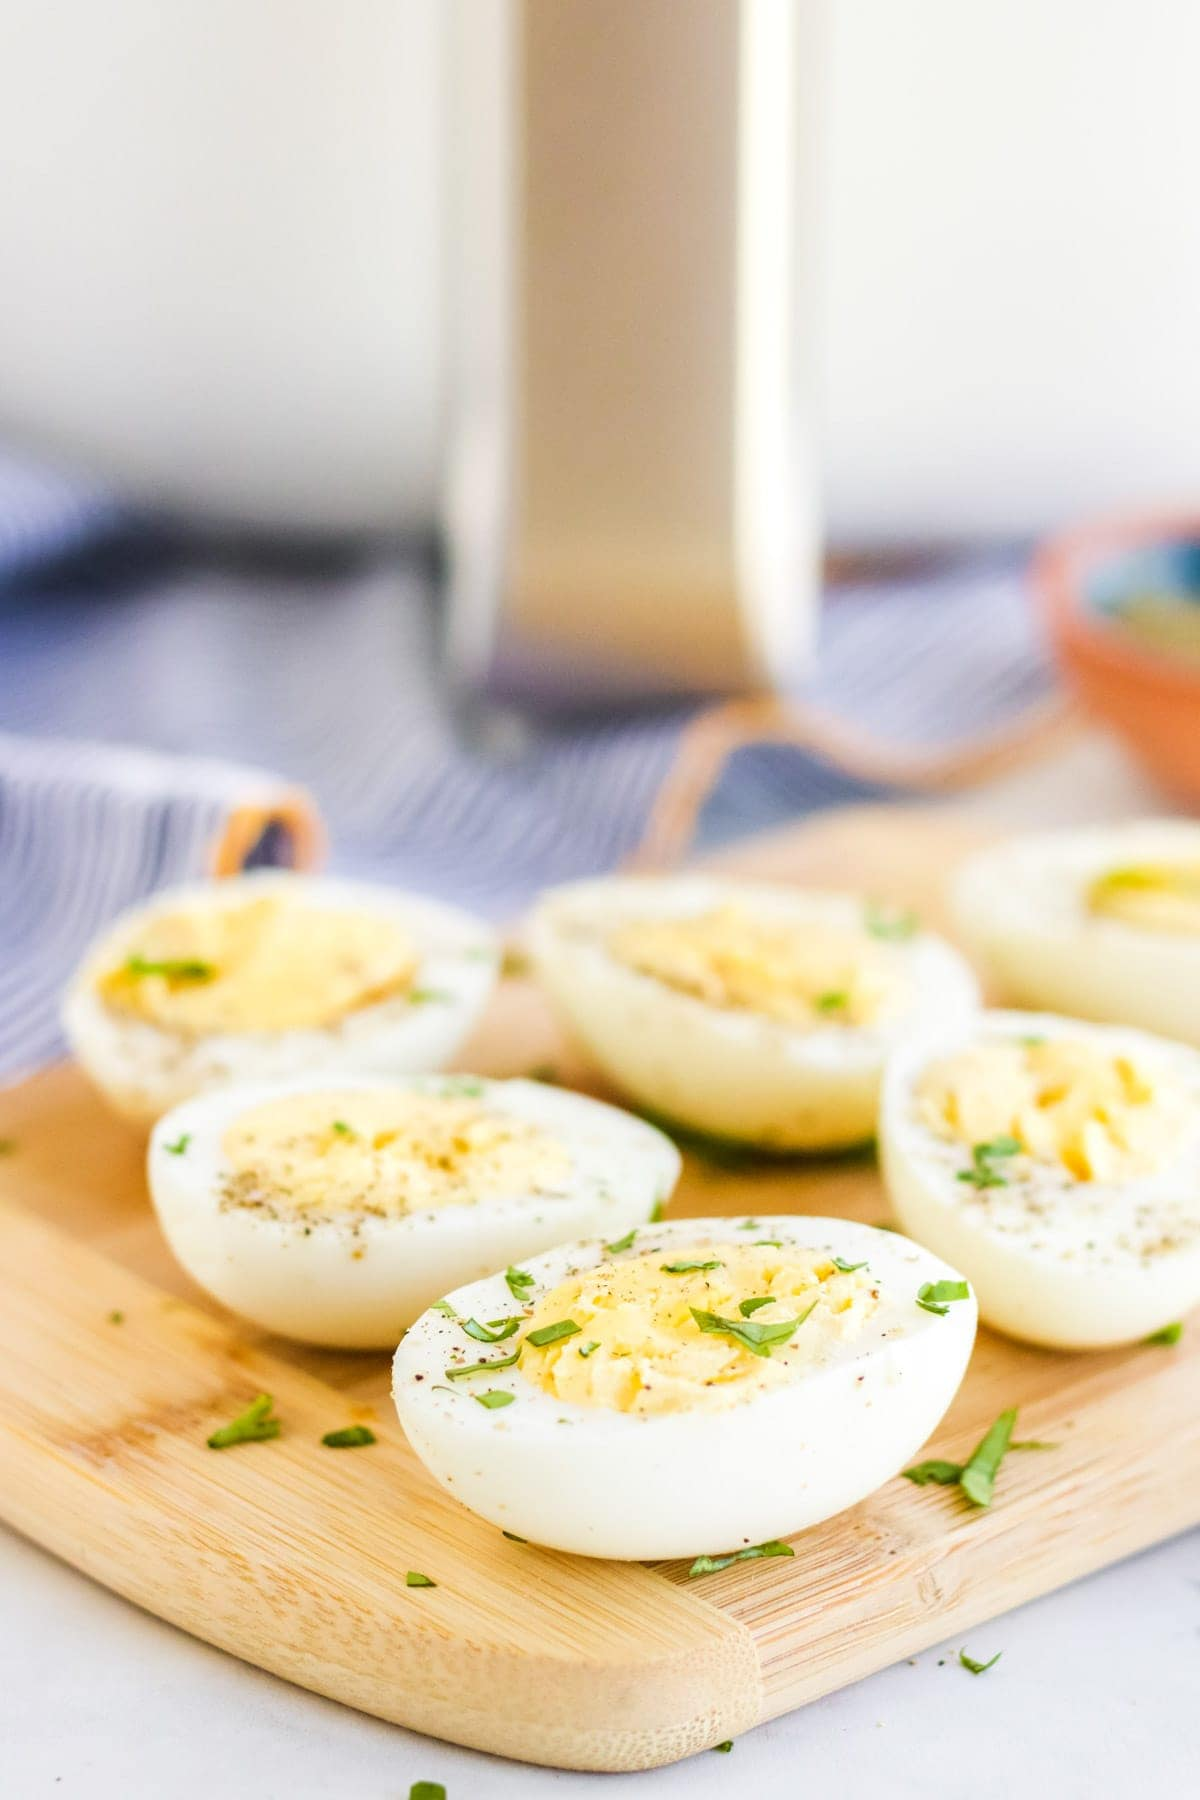 Hard boiled eggs, ut in half, with parsley and black pepper, air fryer